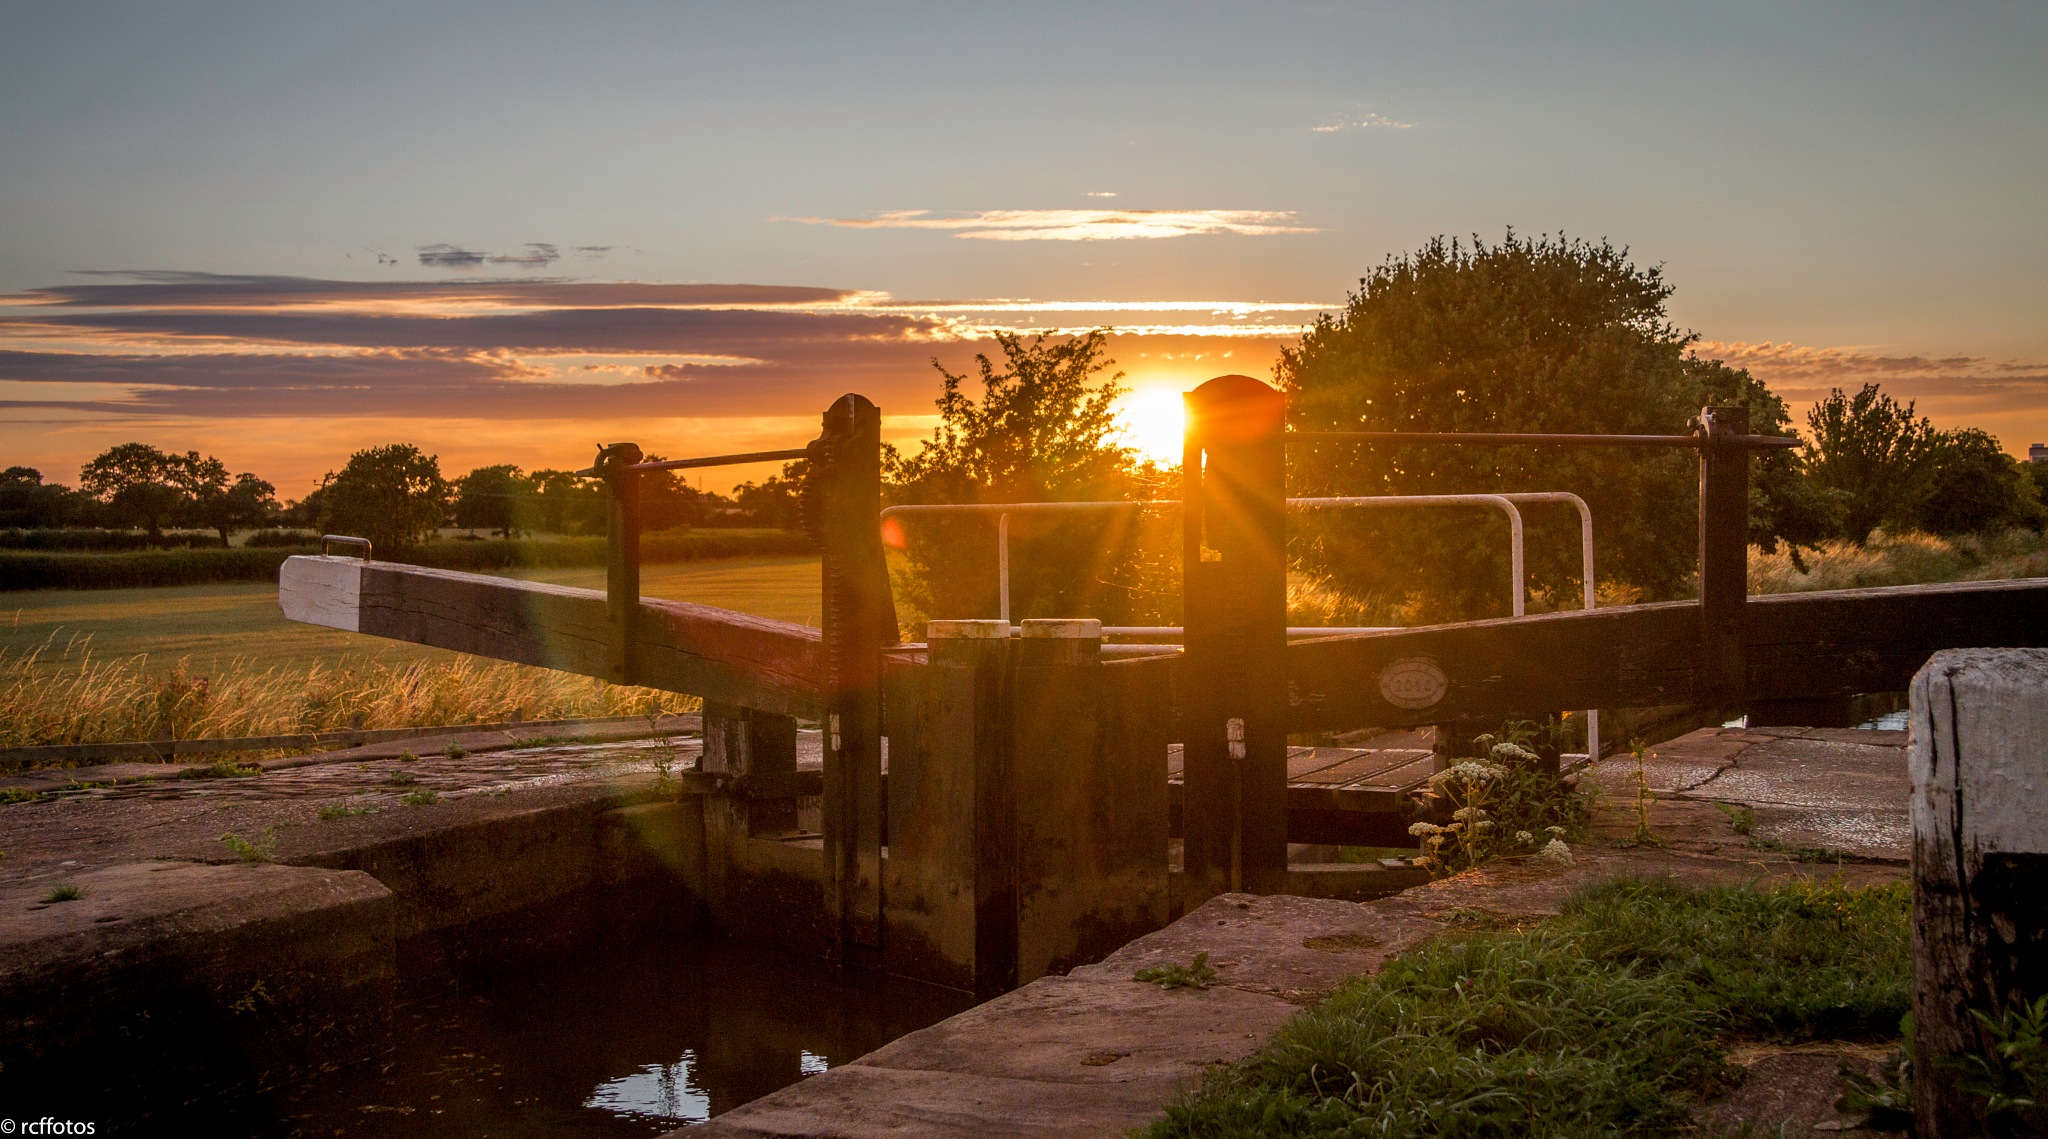 An evening walk along the Shropshire Union Canal. by rc ffotos